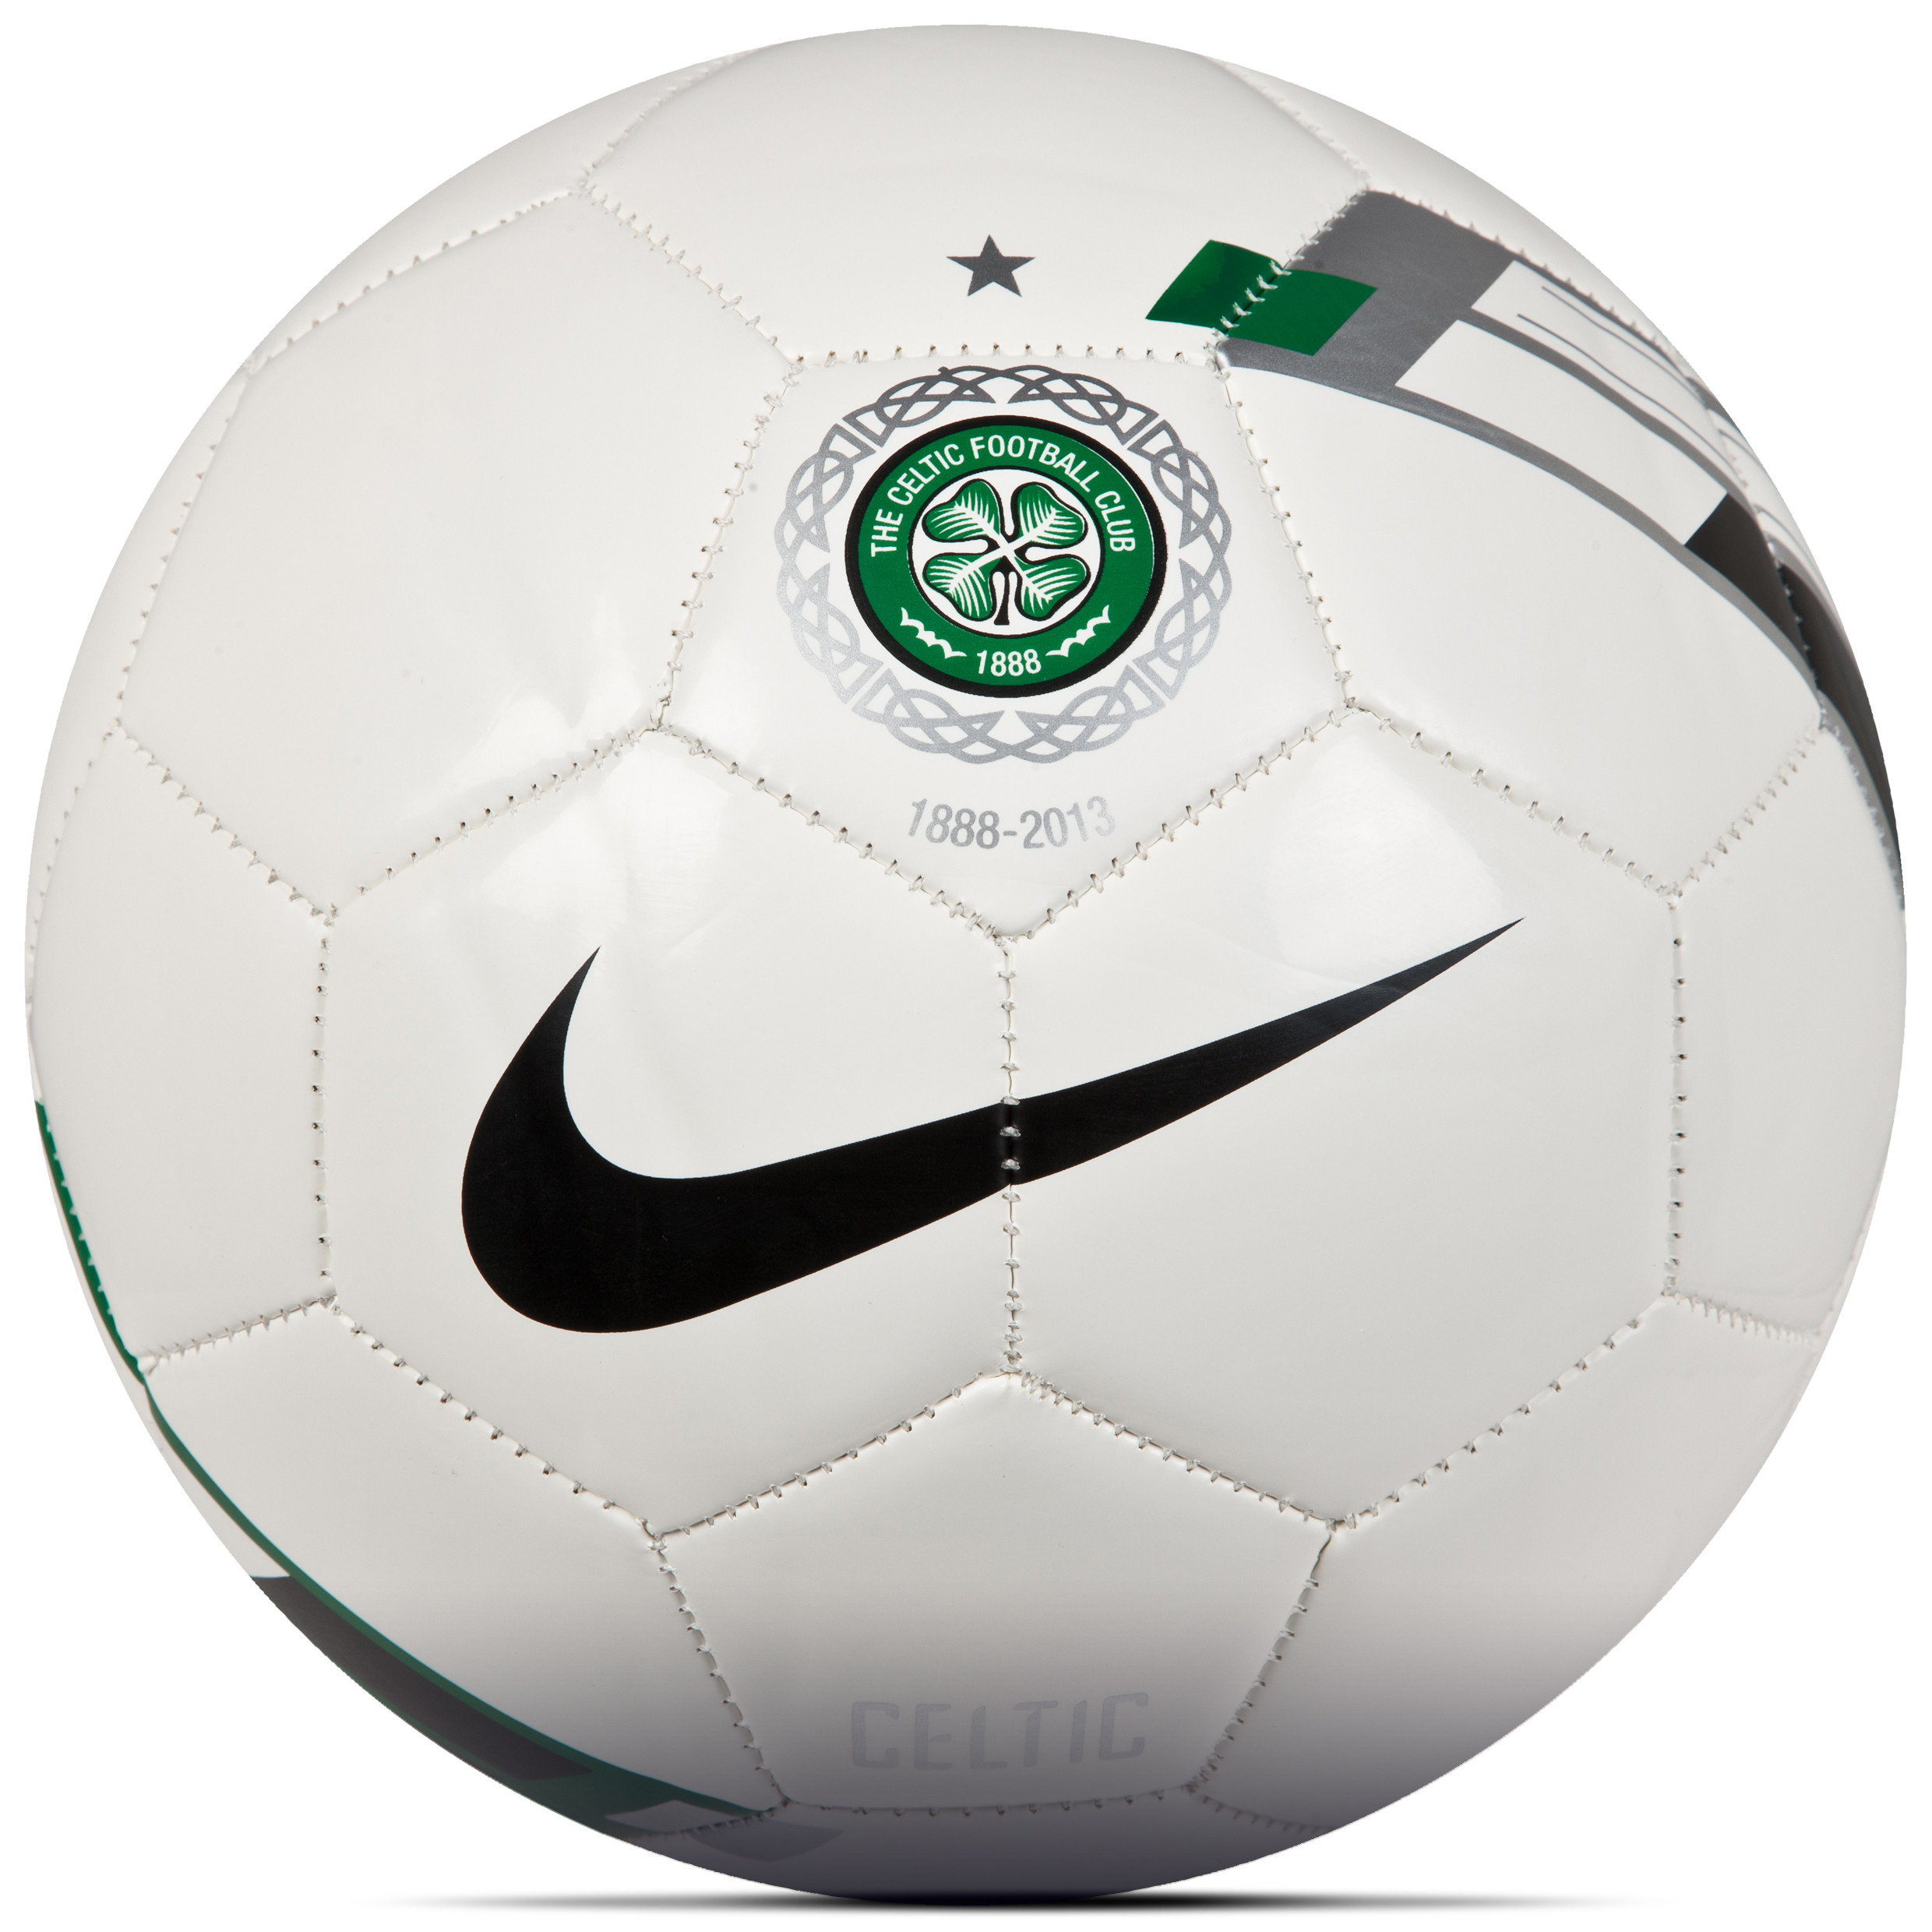 Celtic Supporters Football - White/Green/Black - Size 5